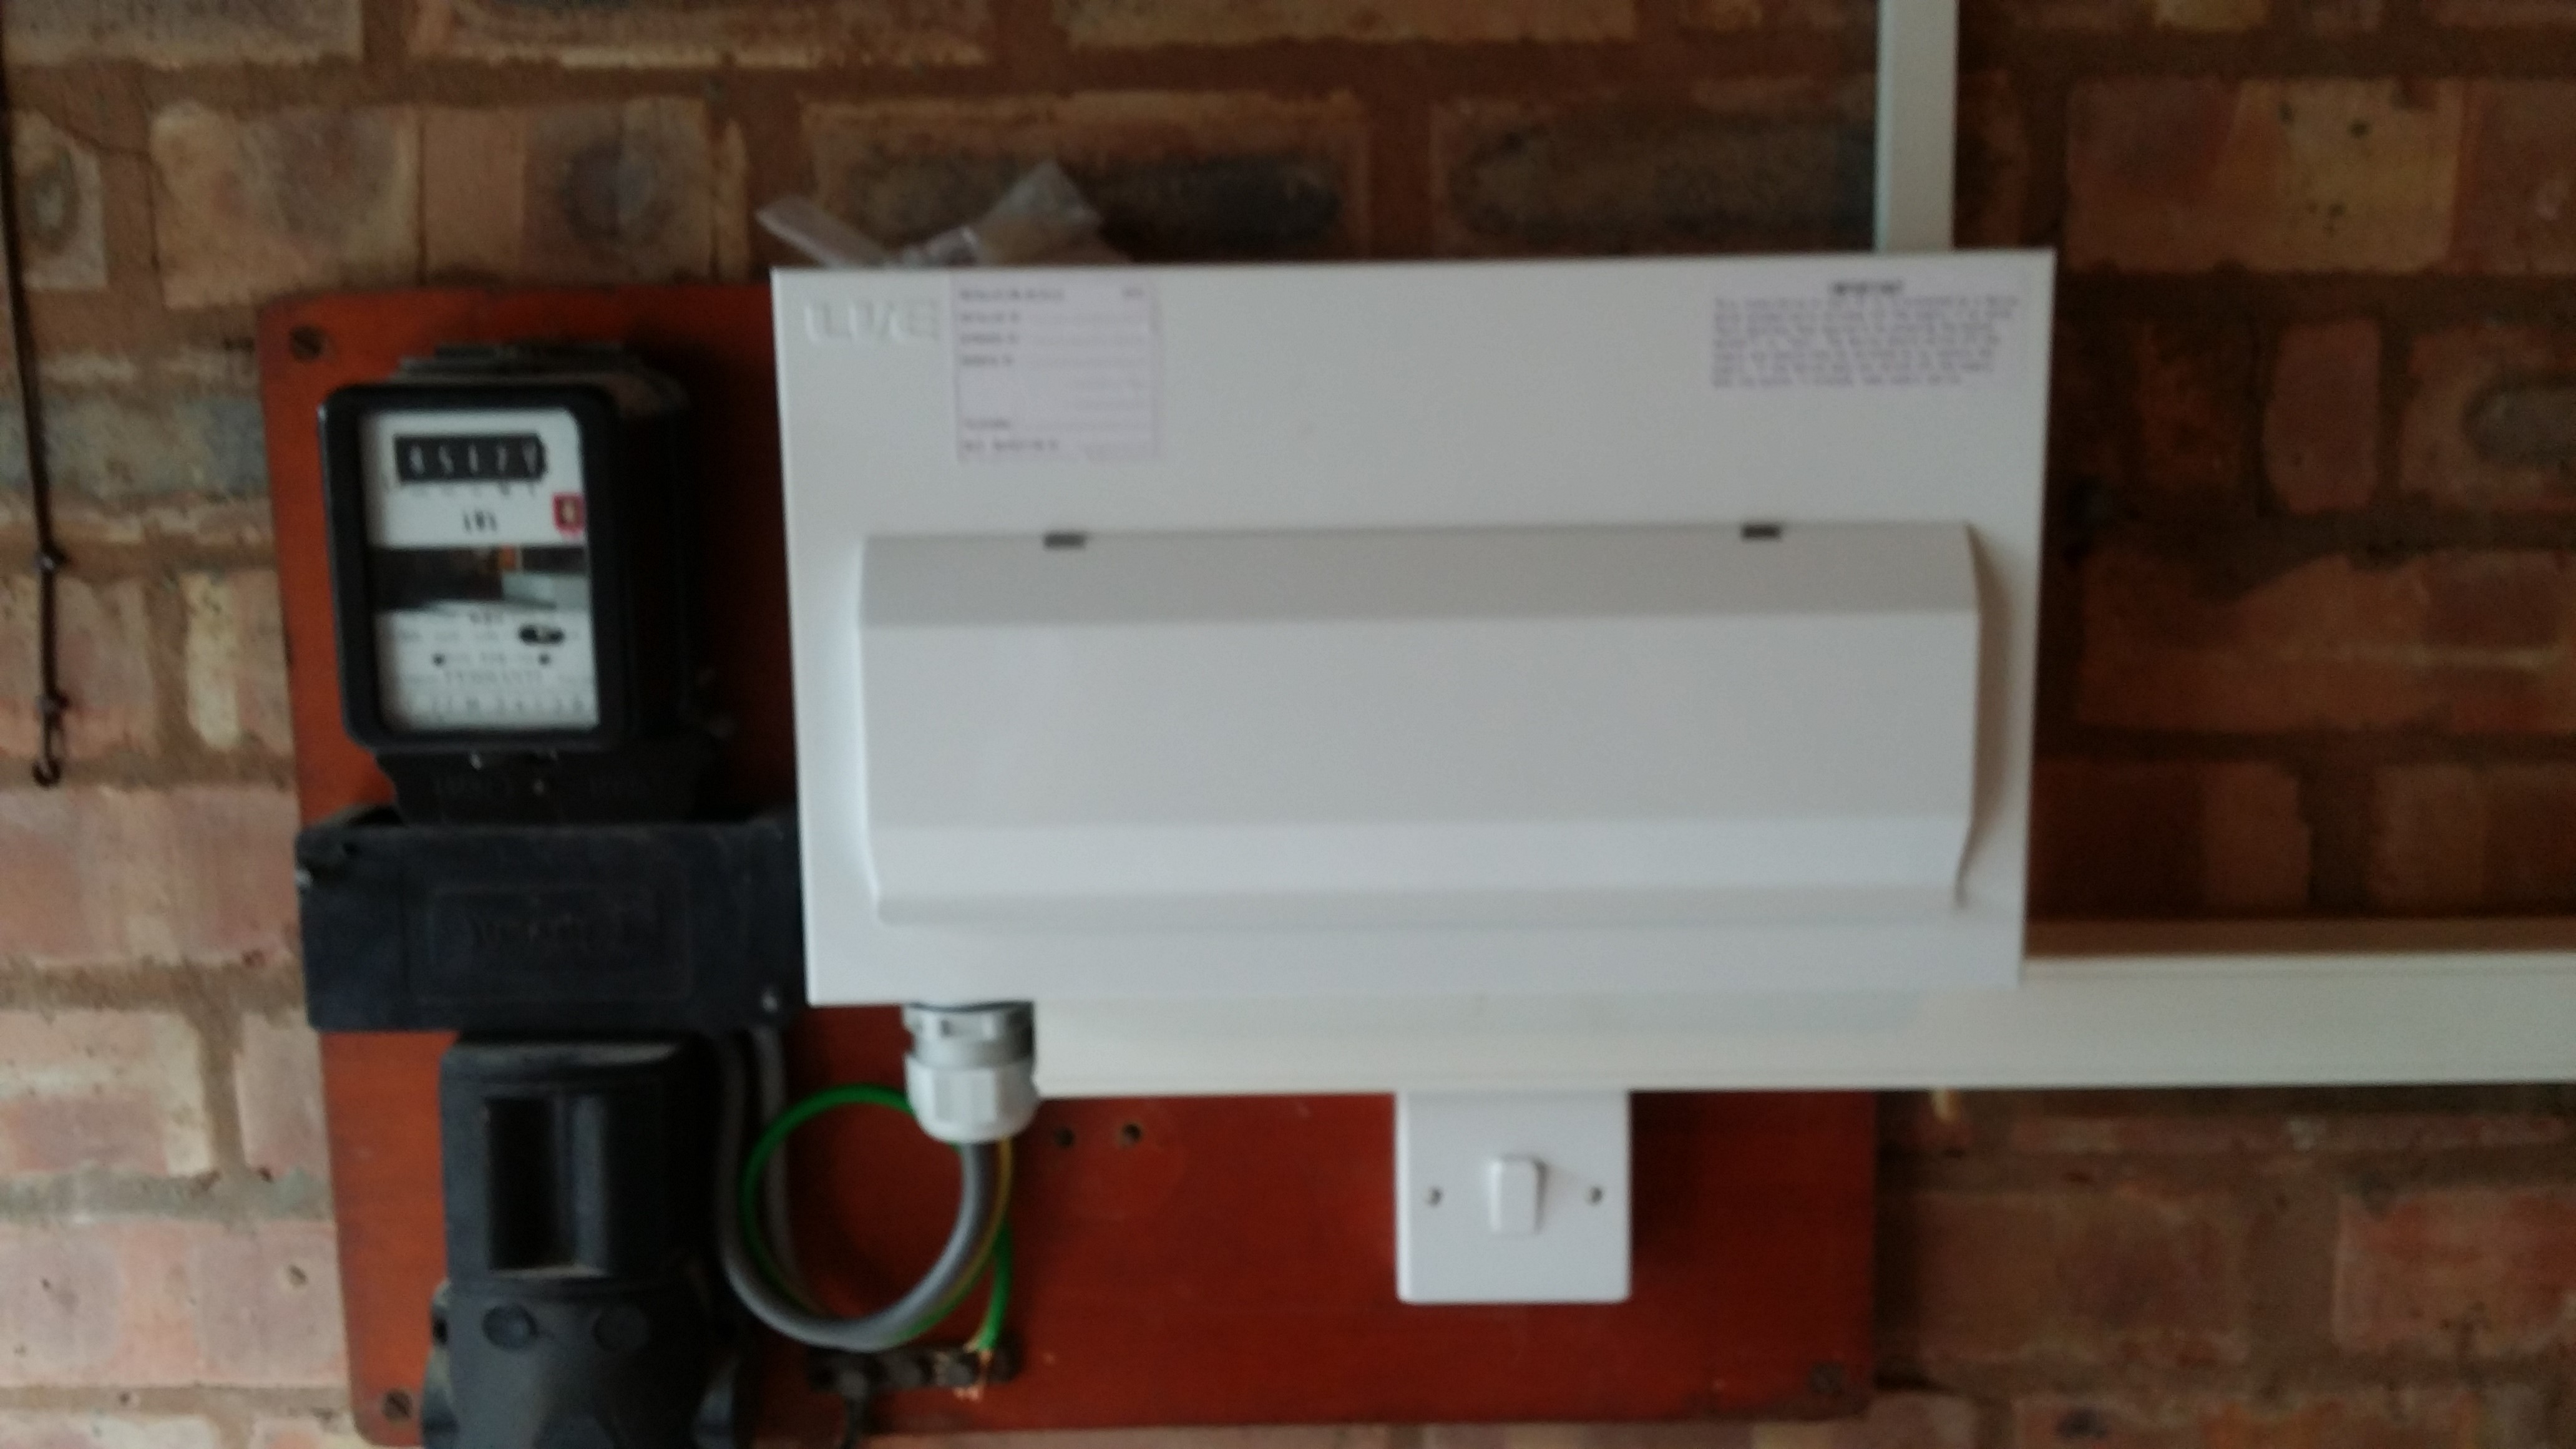 Sample of Rainhill Home Improvement and Energy Services work with meters and circuit boards